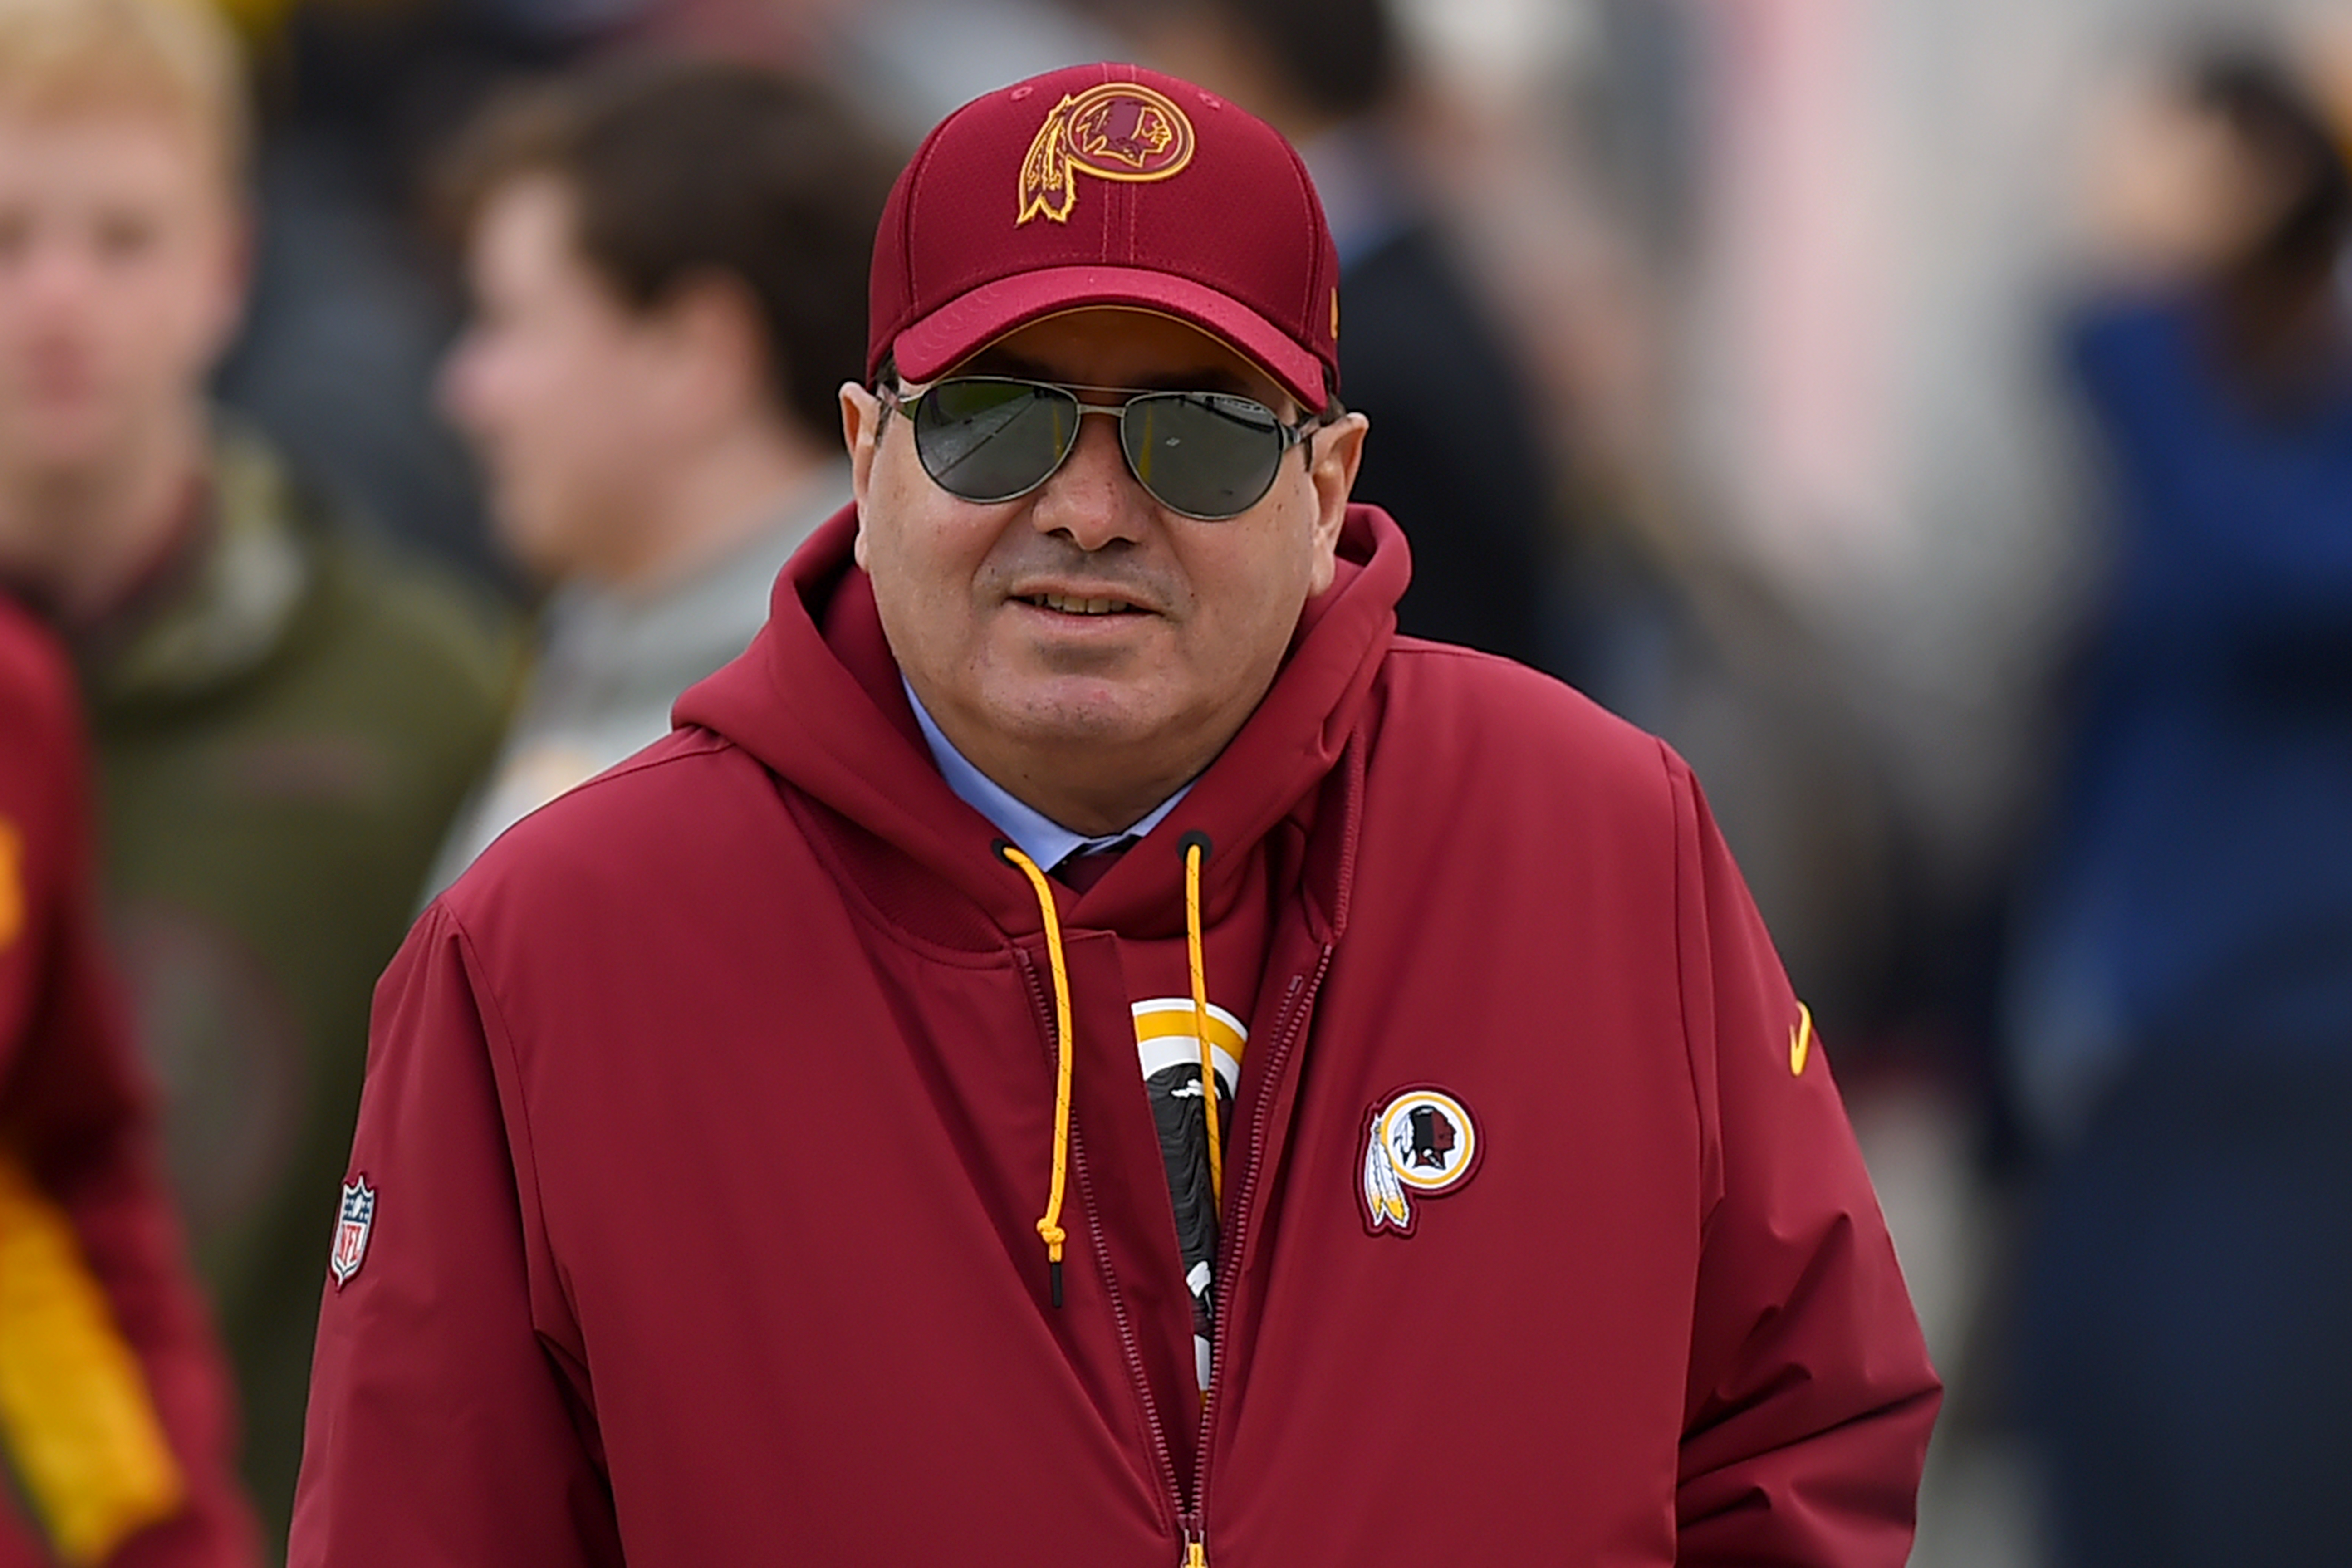 Washington Redskins owner Daniel Snyder before a game between the Redskins and Philadelphia Eagles at FedExField on December 30, 2018. (Will Newton/Getty Images)